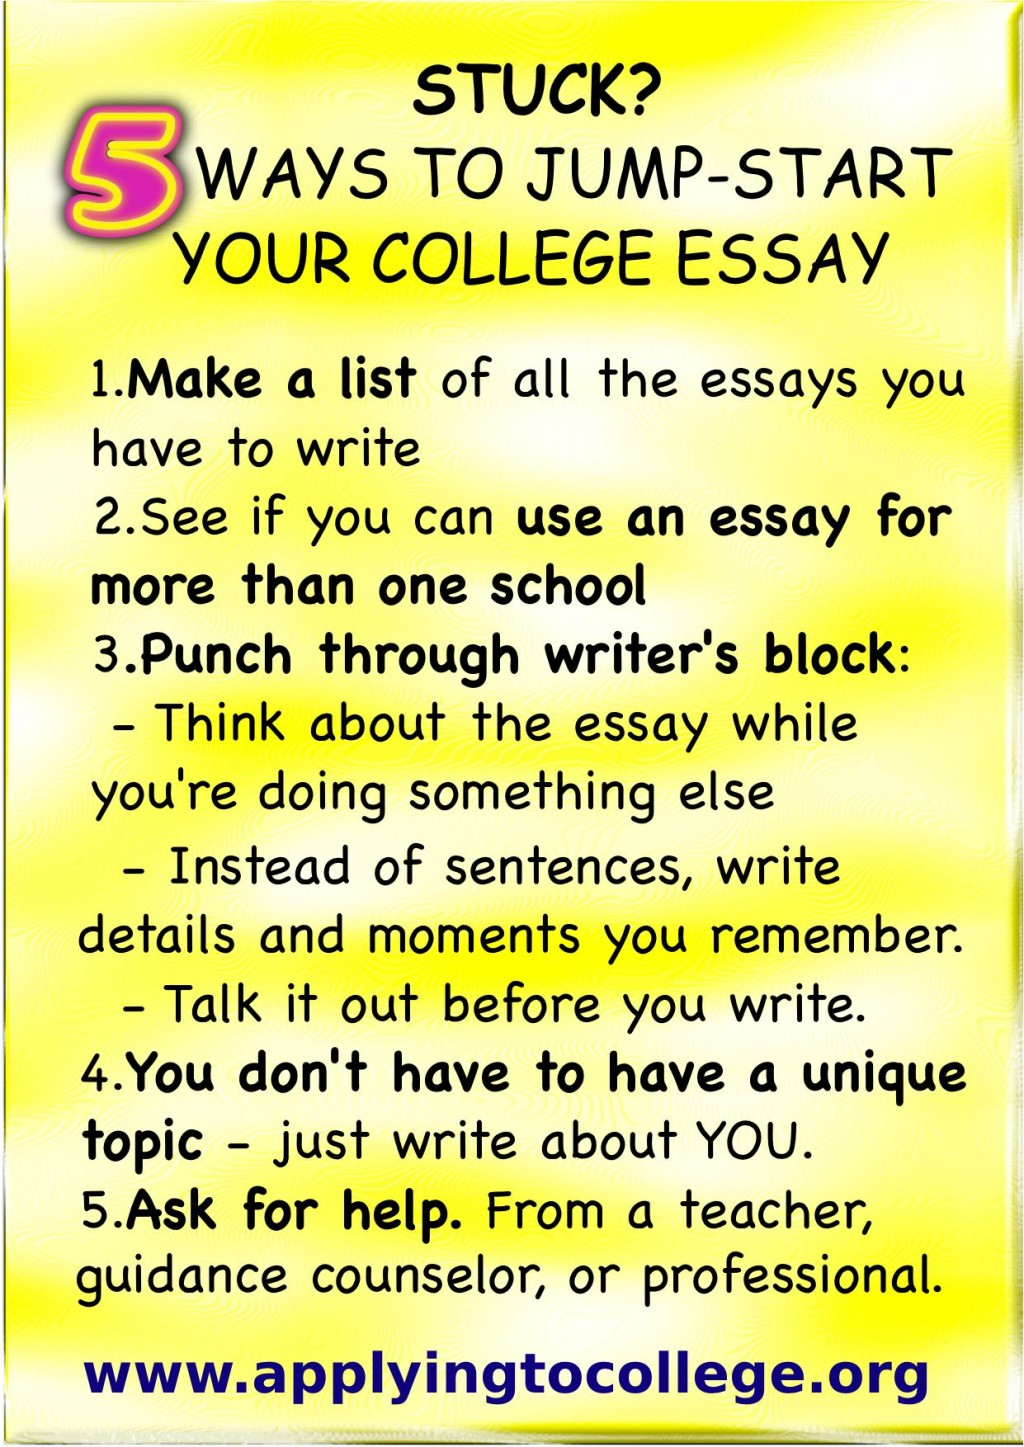 016 Essay Example Writing College Application Rare A Topics To Write On Tips For About Yourself Large